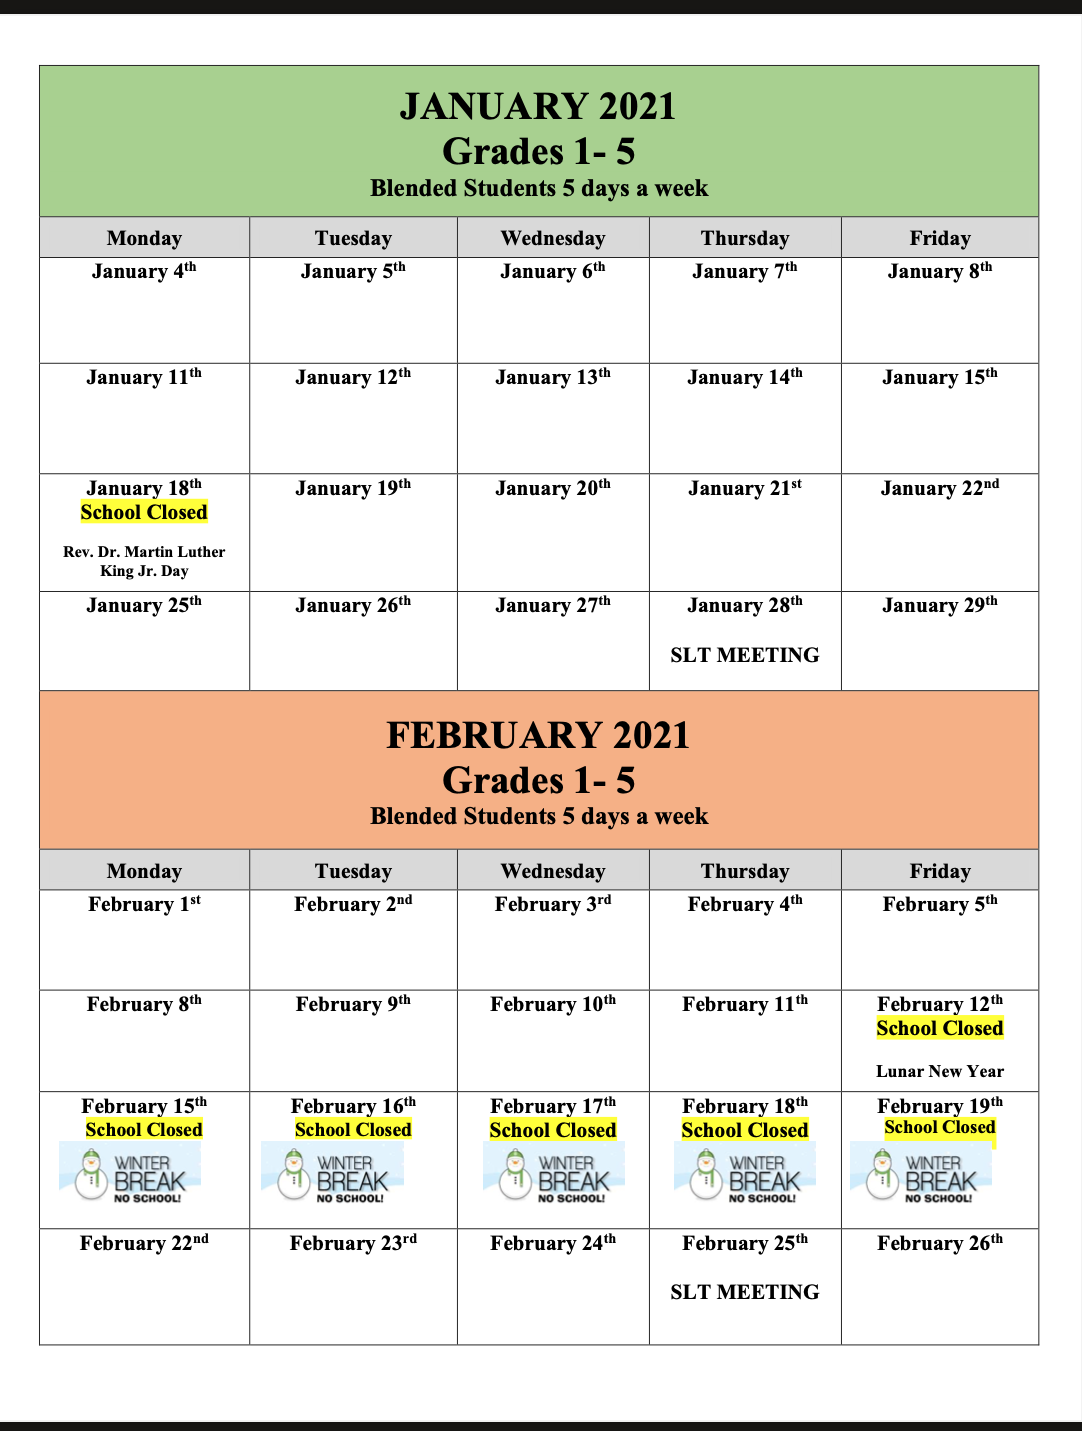 January/February 2021 school calendar including holidays for in-person full time students.